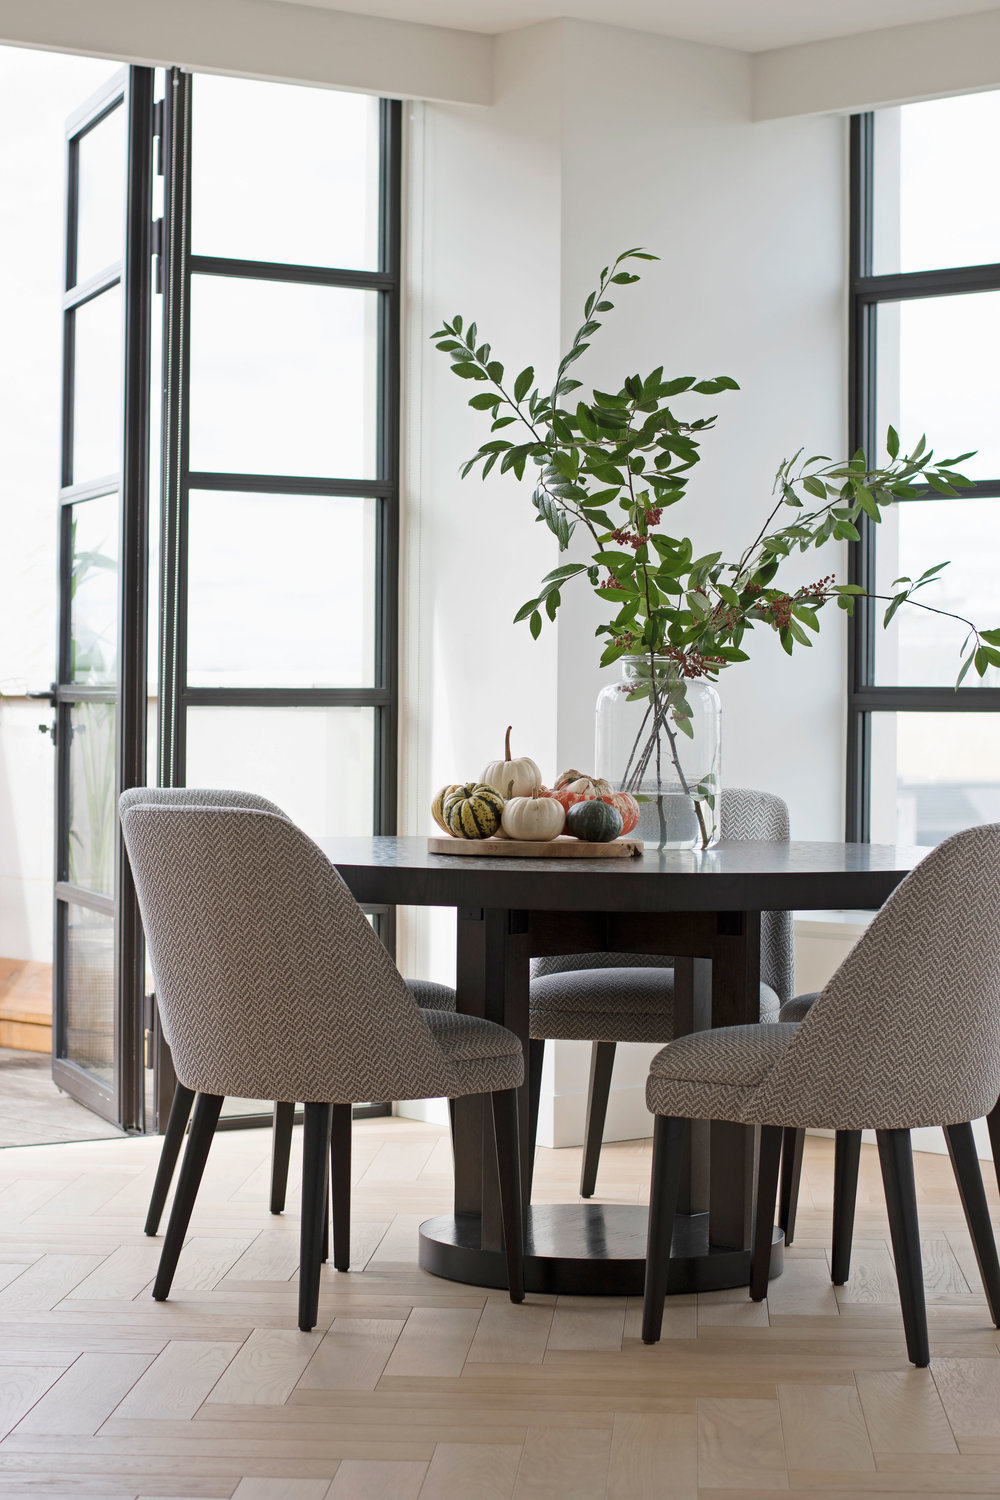 th2designs_Sherwood-St_St-James_dining_1.jpg